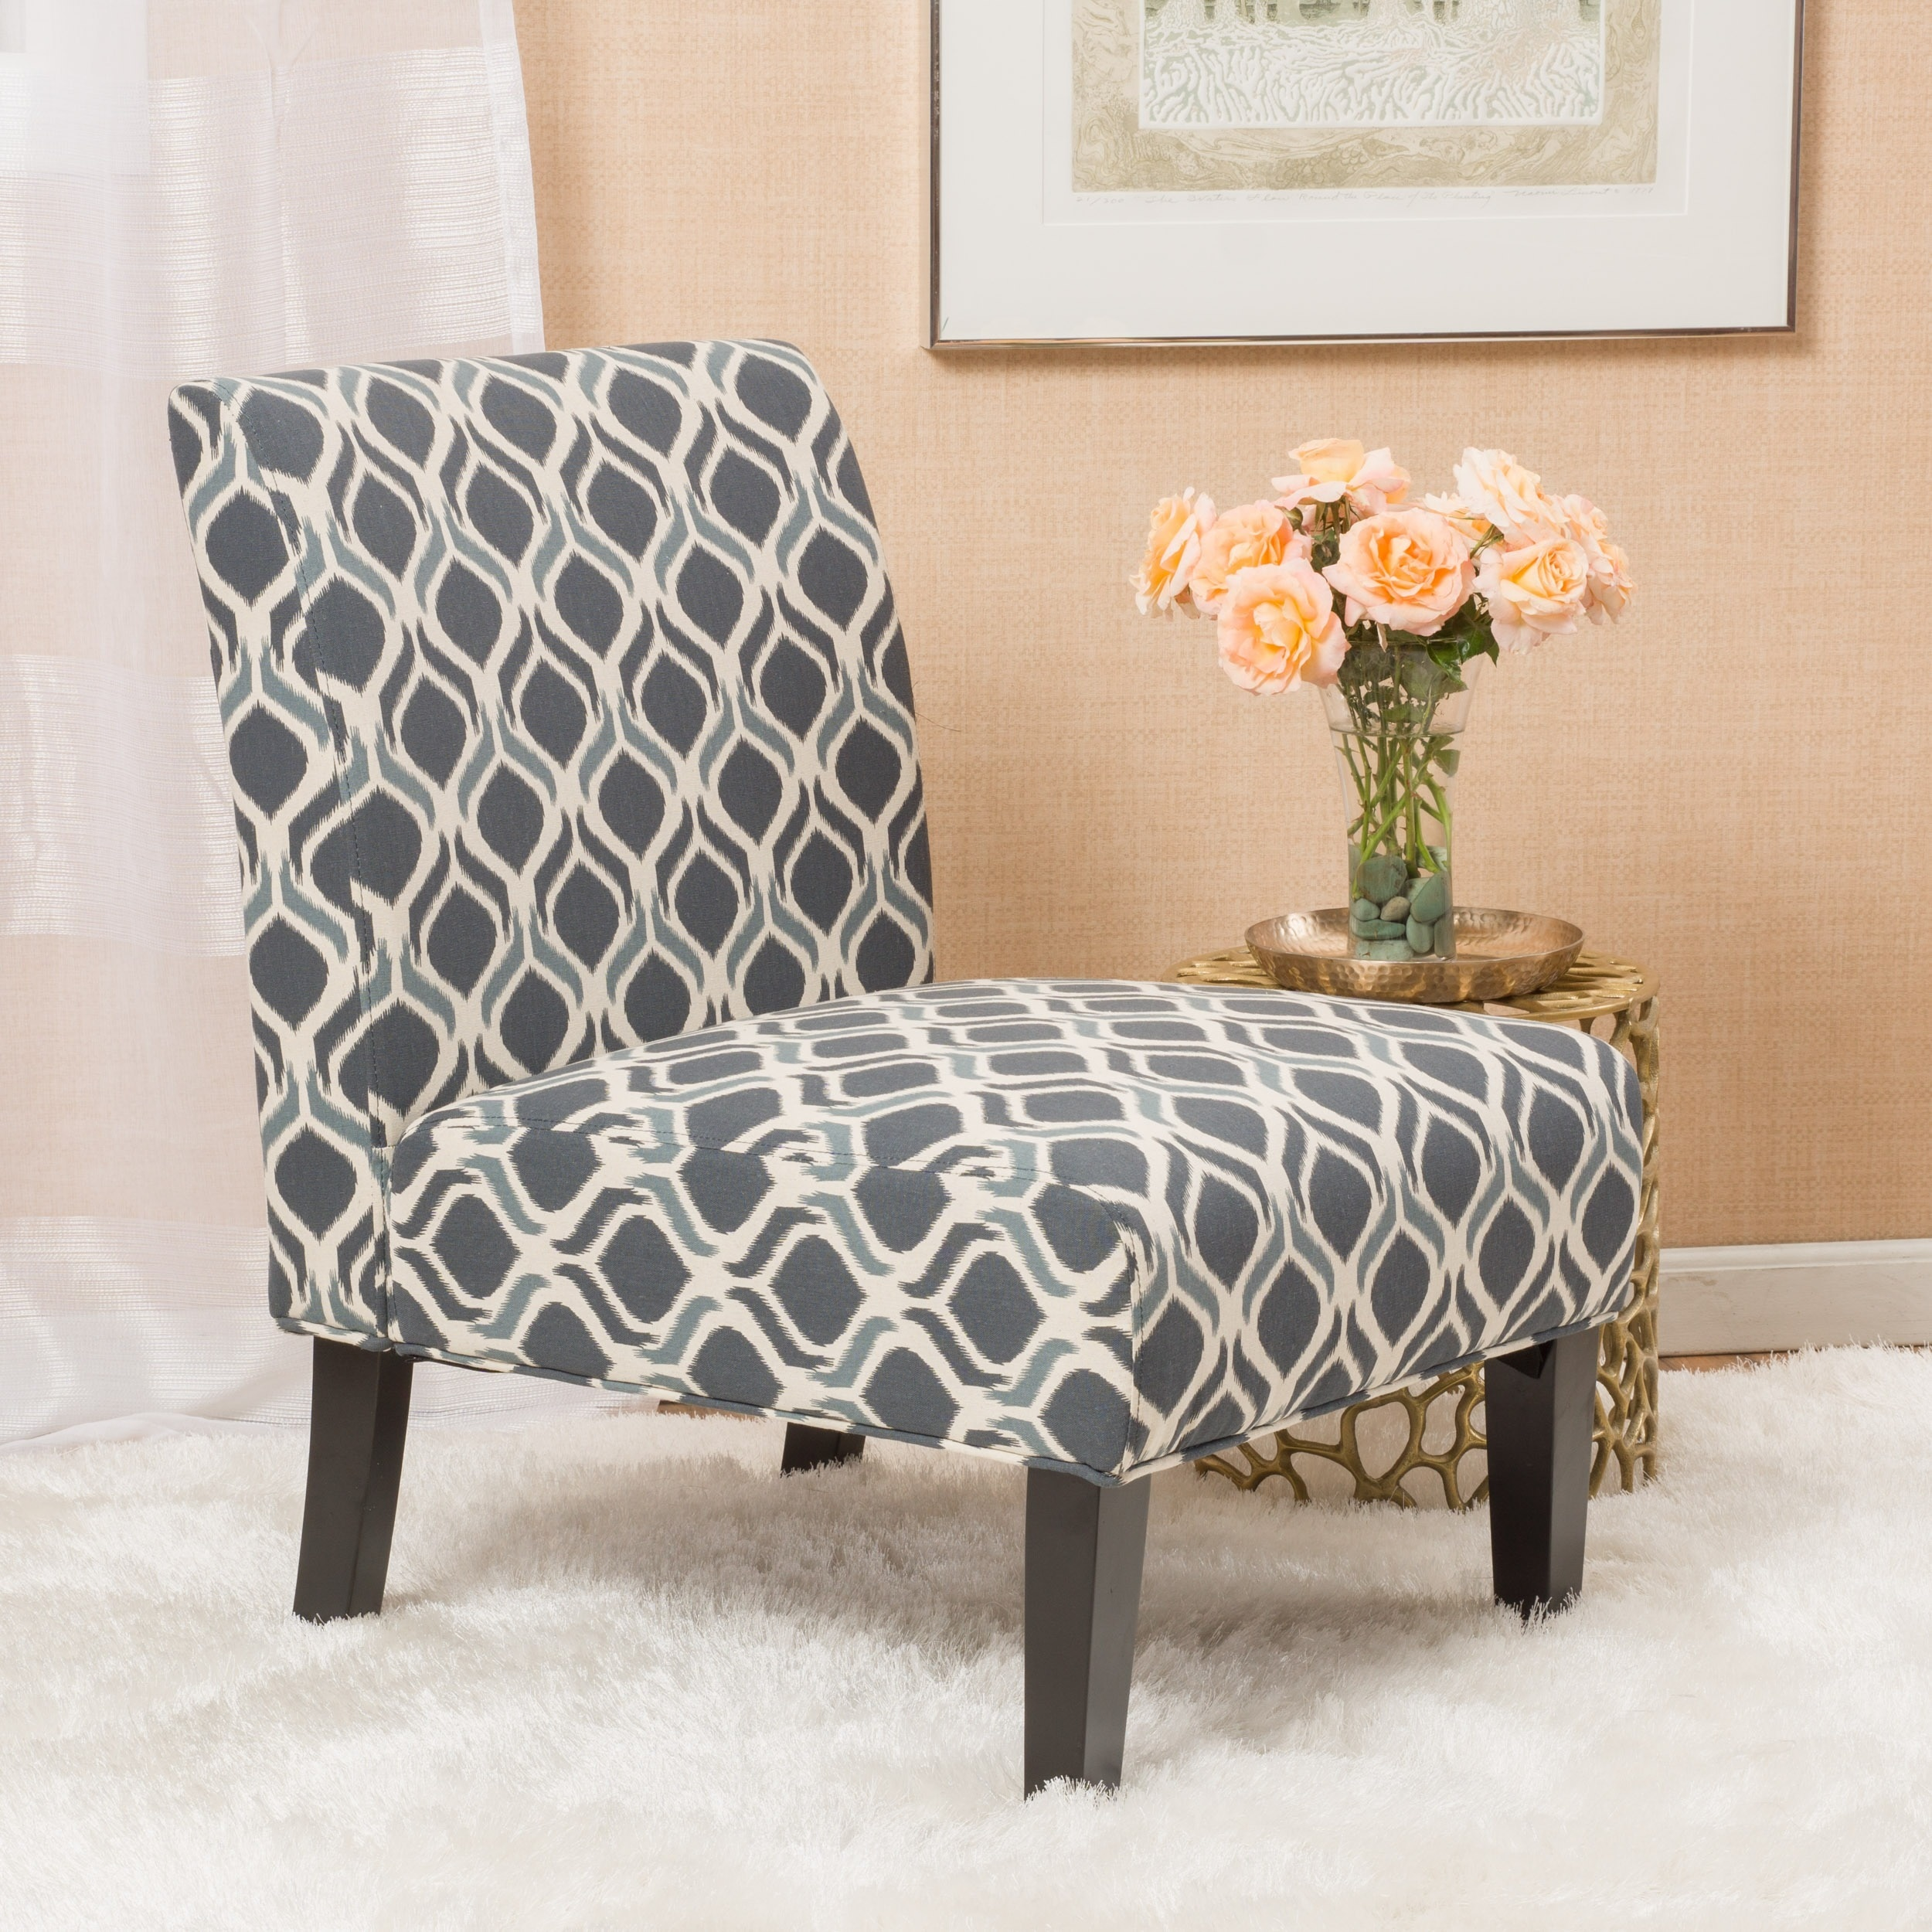 Christopher Knight Home Saloon Fabric Print Accent Chair By